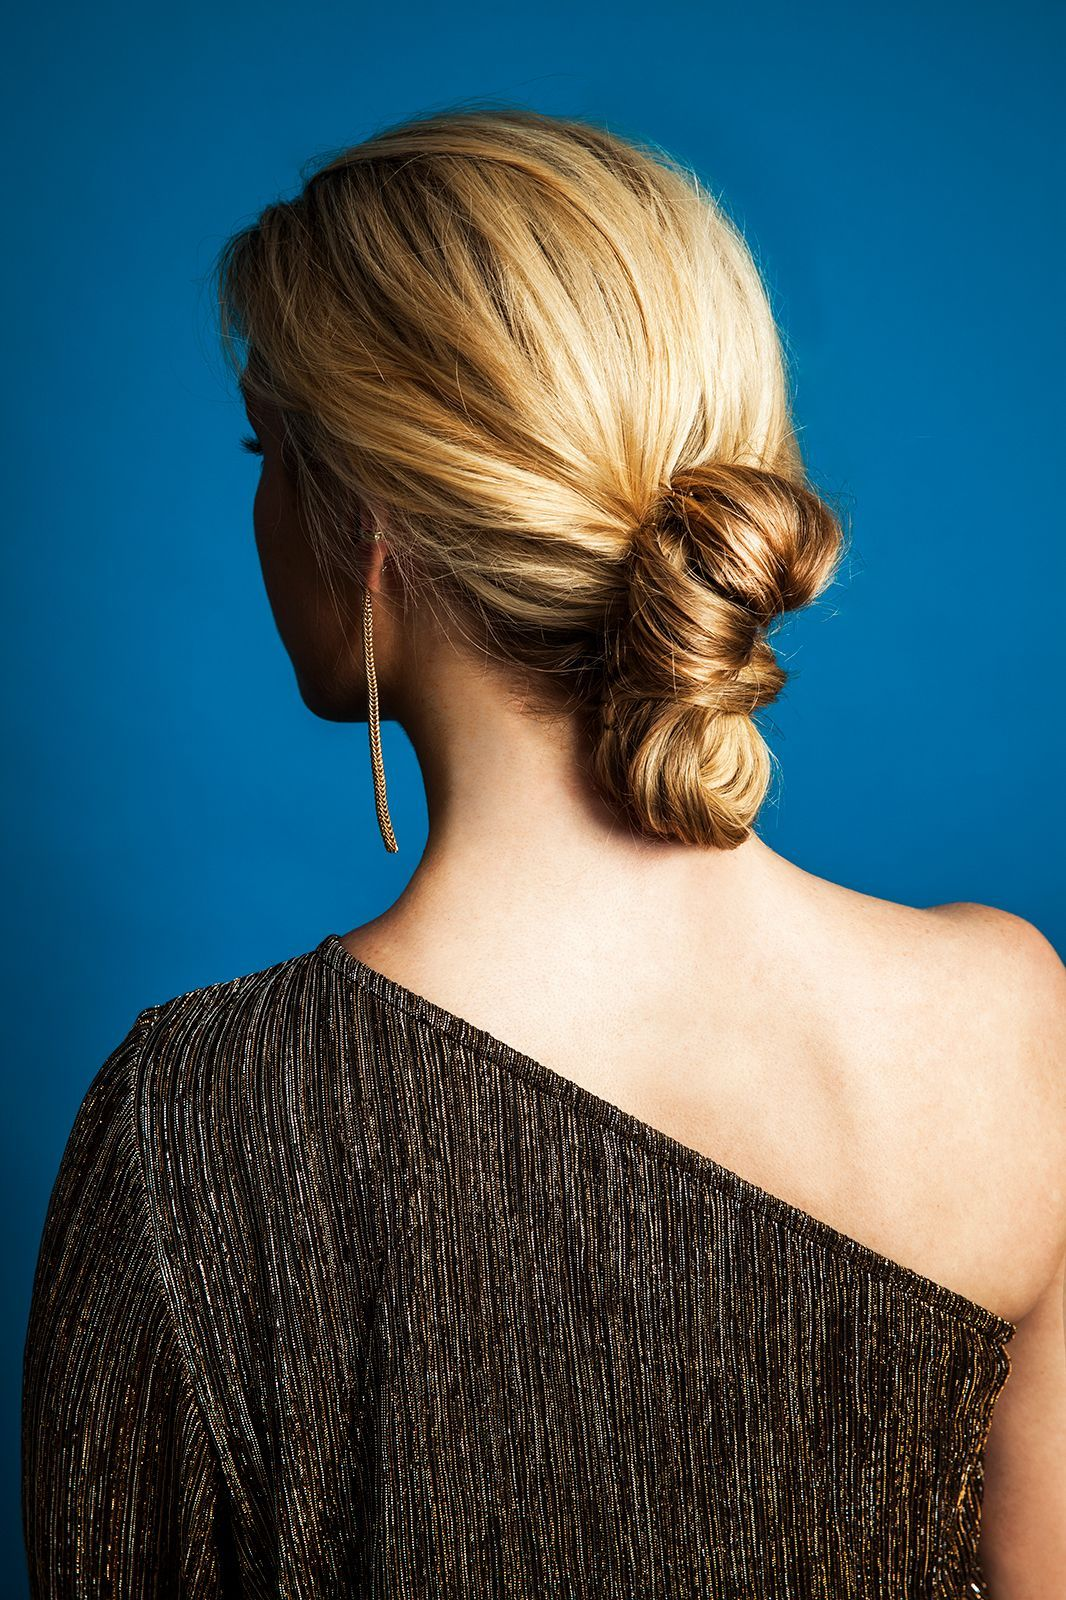 2019 year look- Hairstyles Hairspray pictures